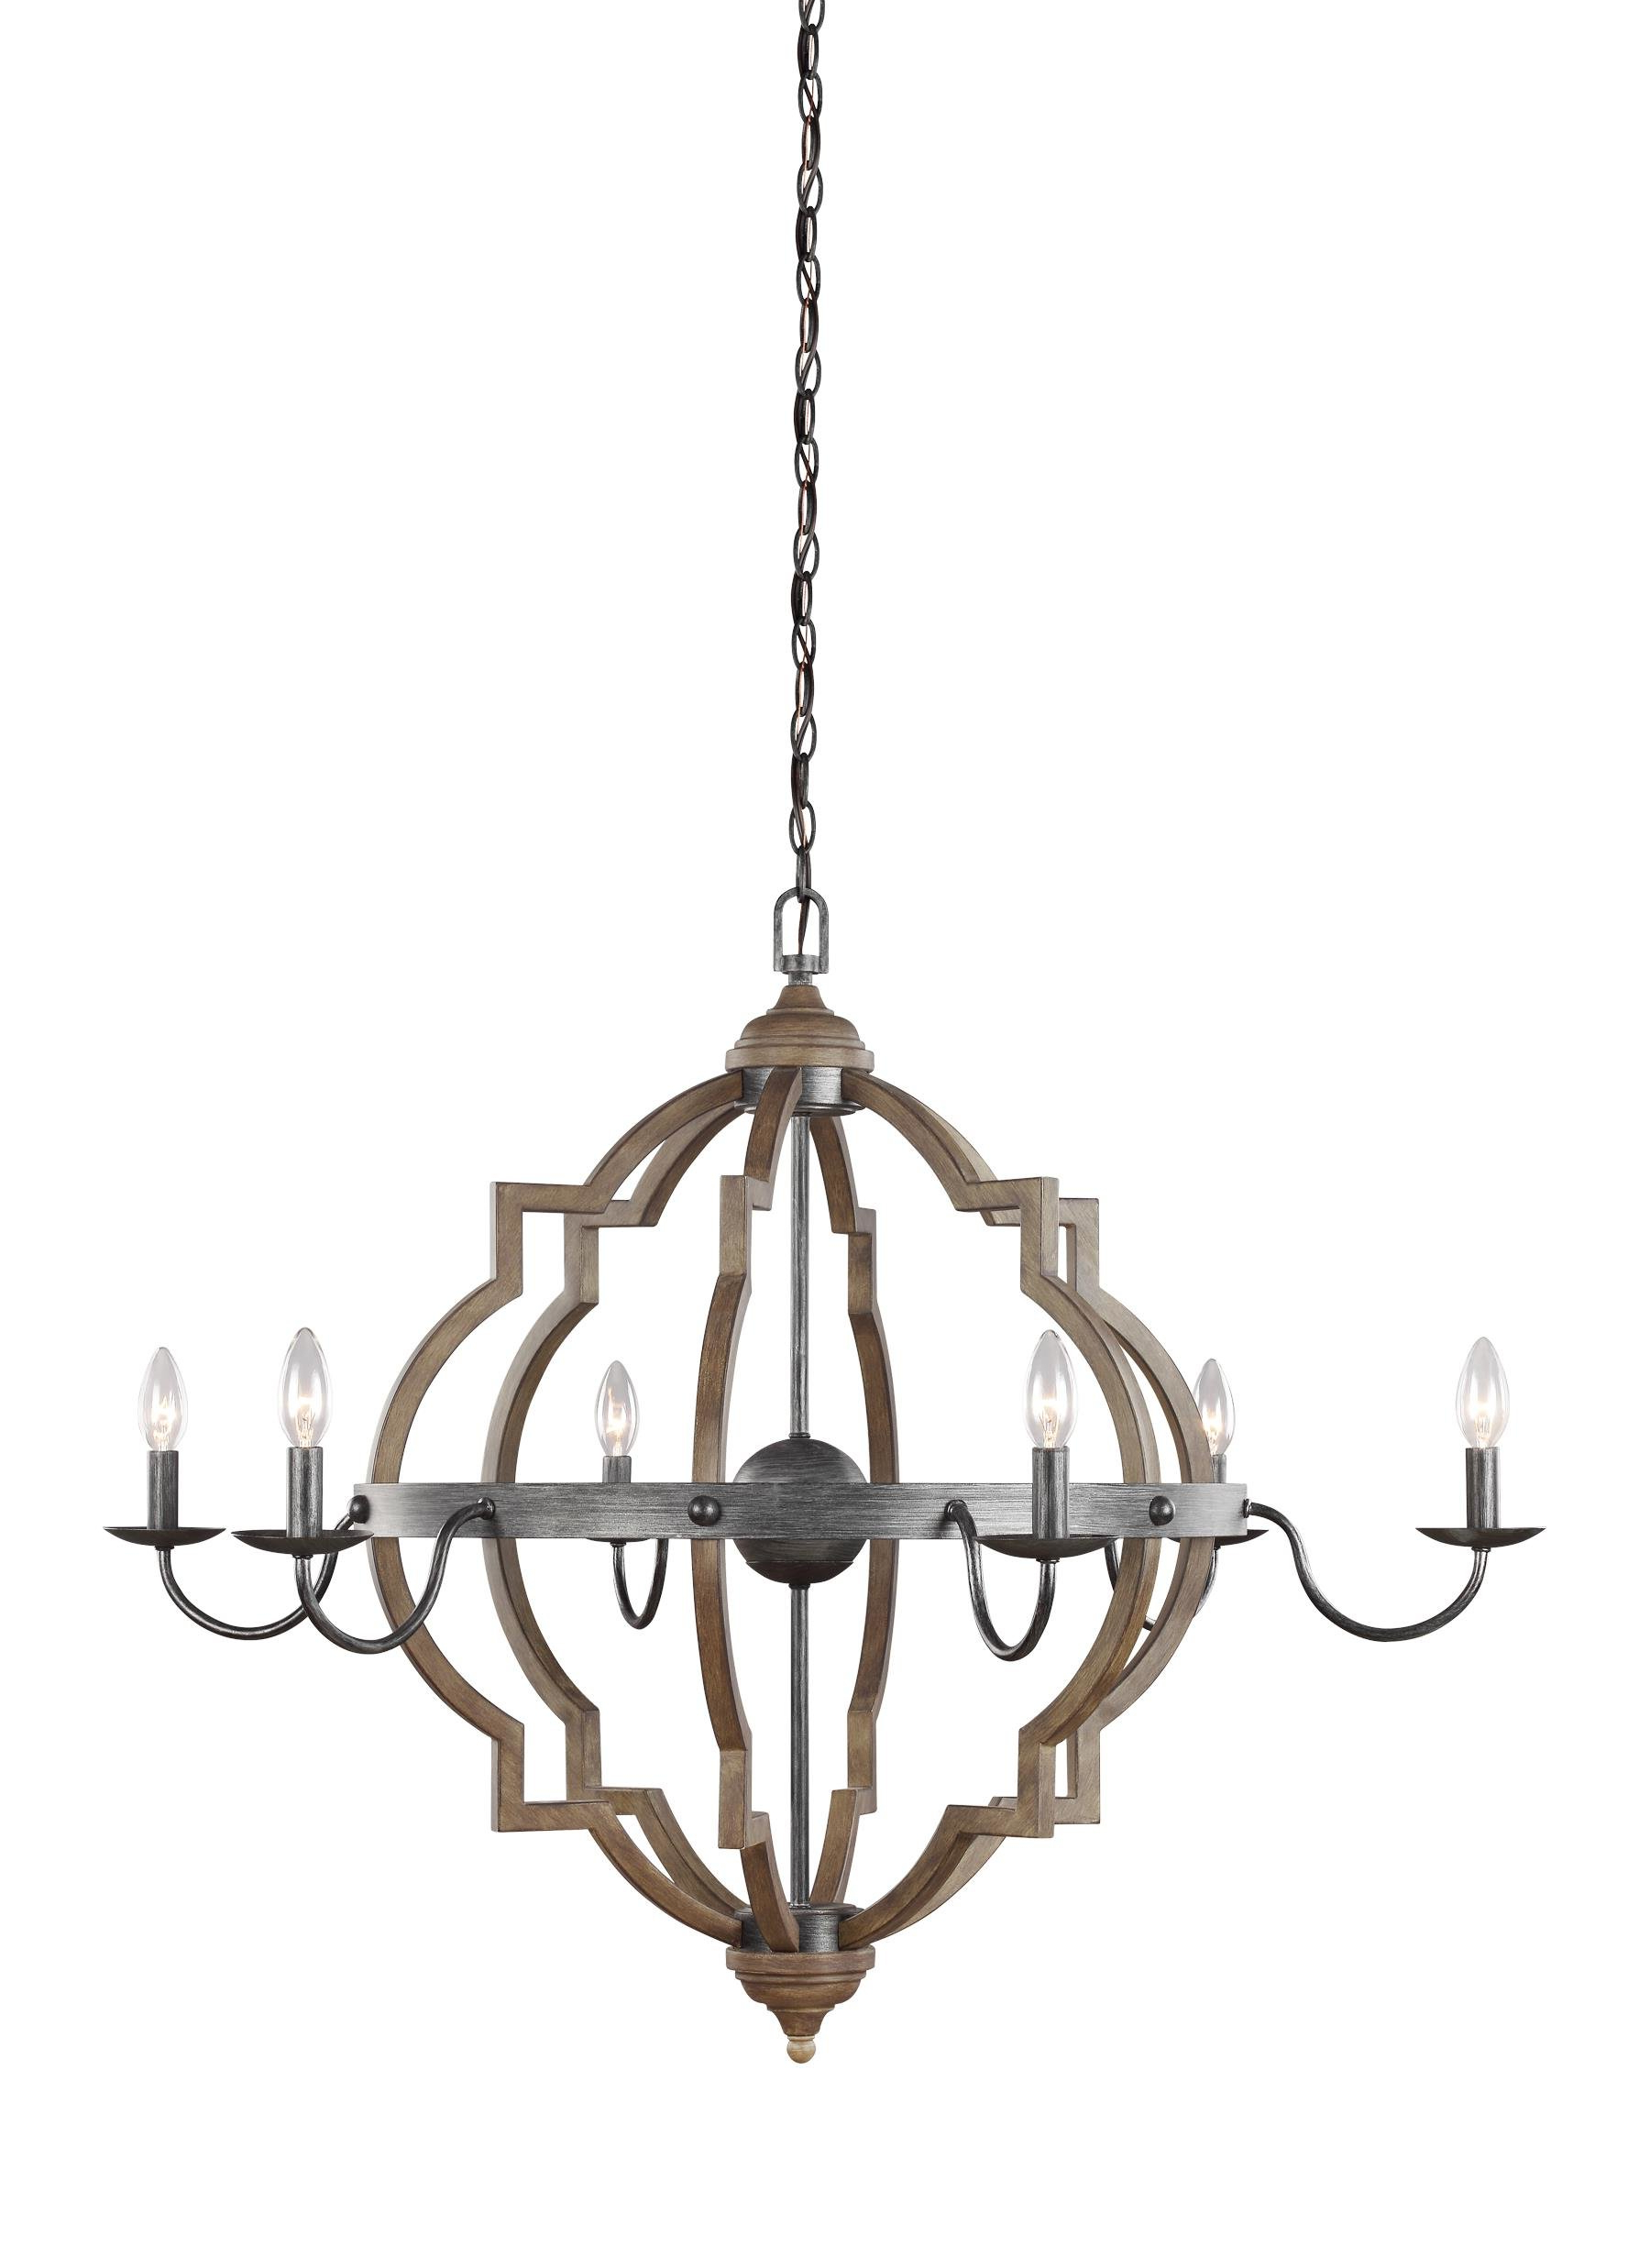 Diaz 6 Light Candle Style Chandeliers Within Current Donna 6 Light Candle Style Chandelier & Reviews (View 12 of 20)